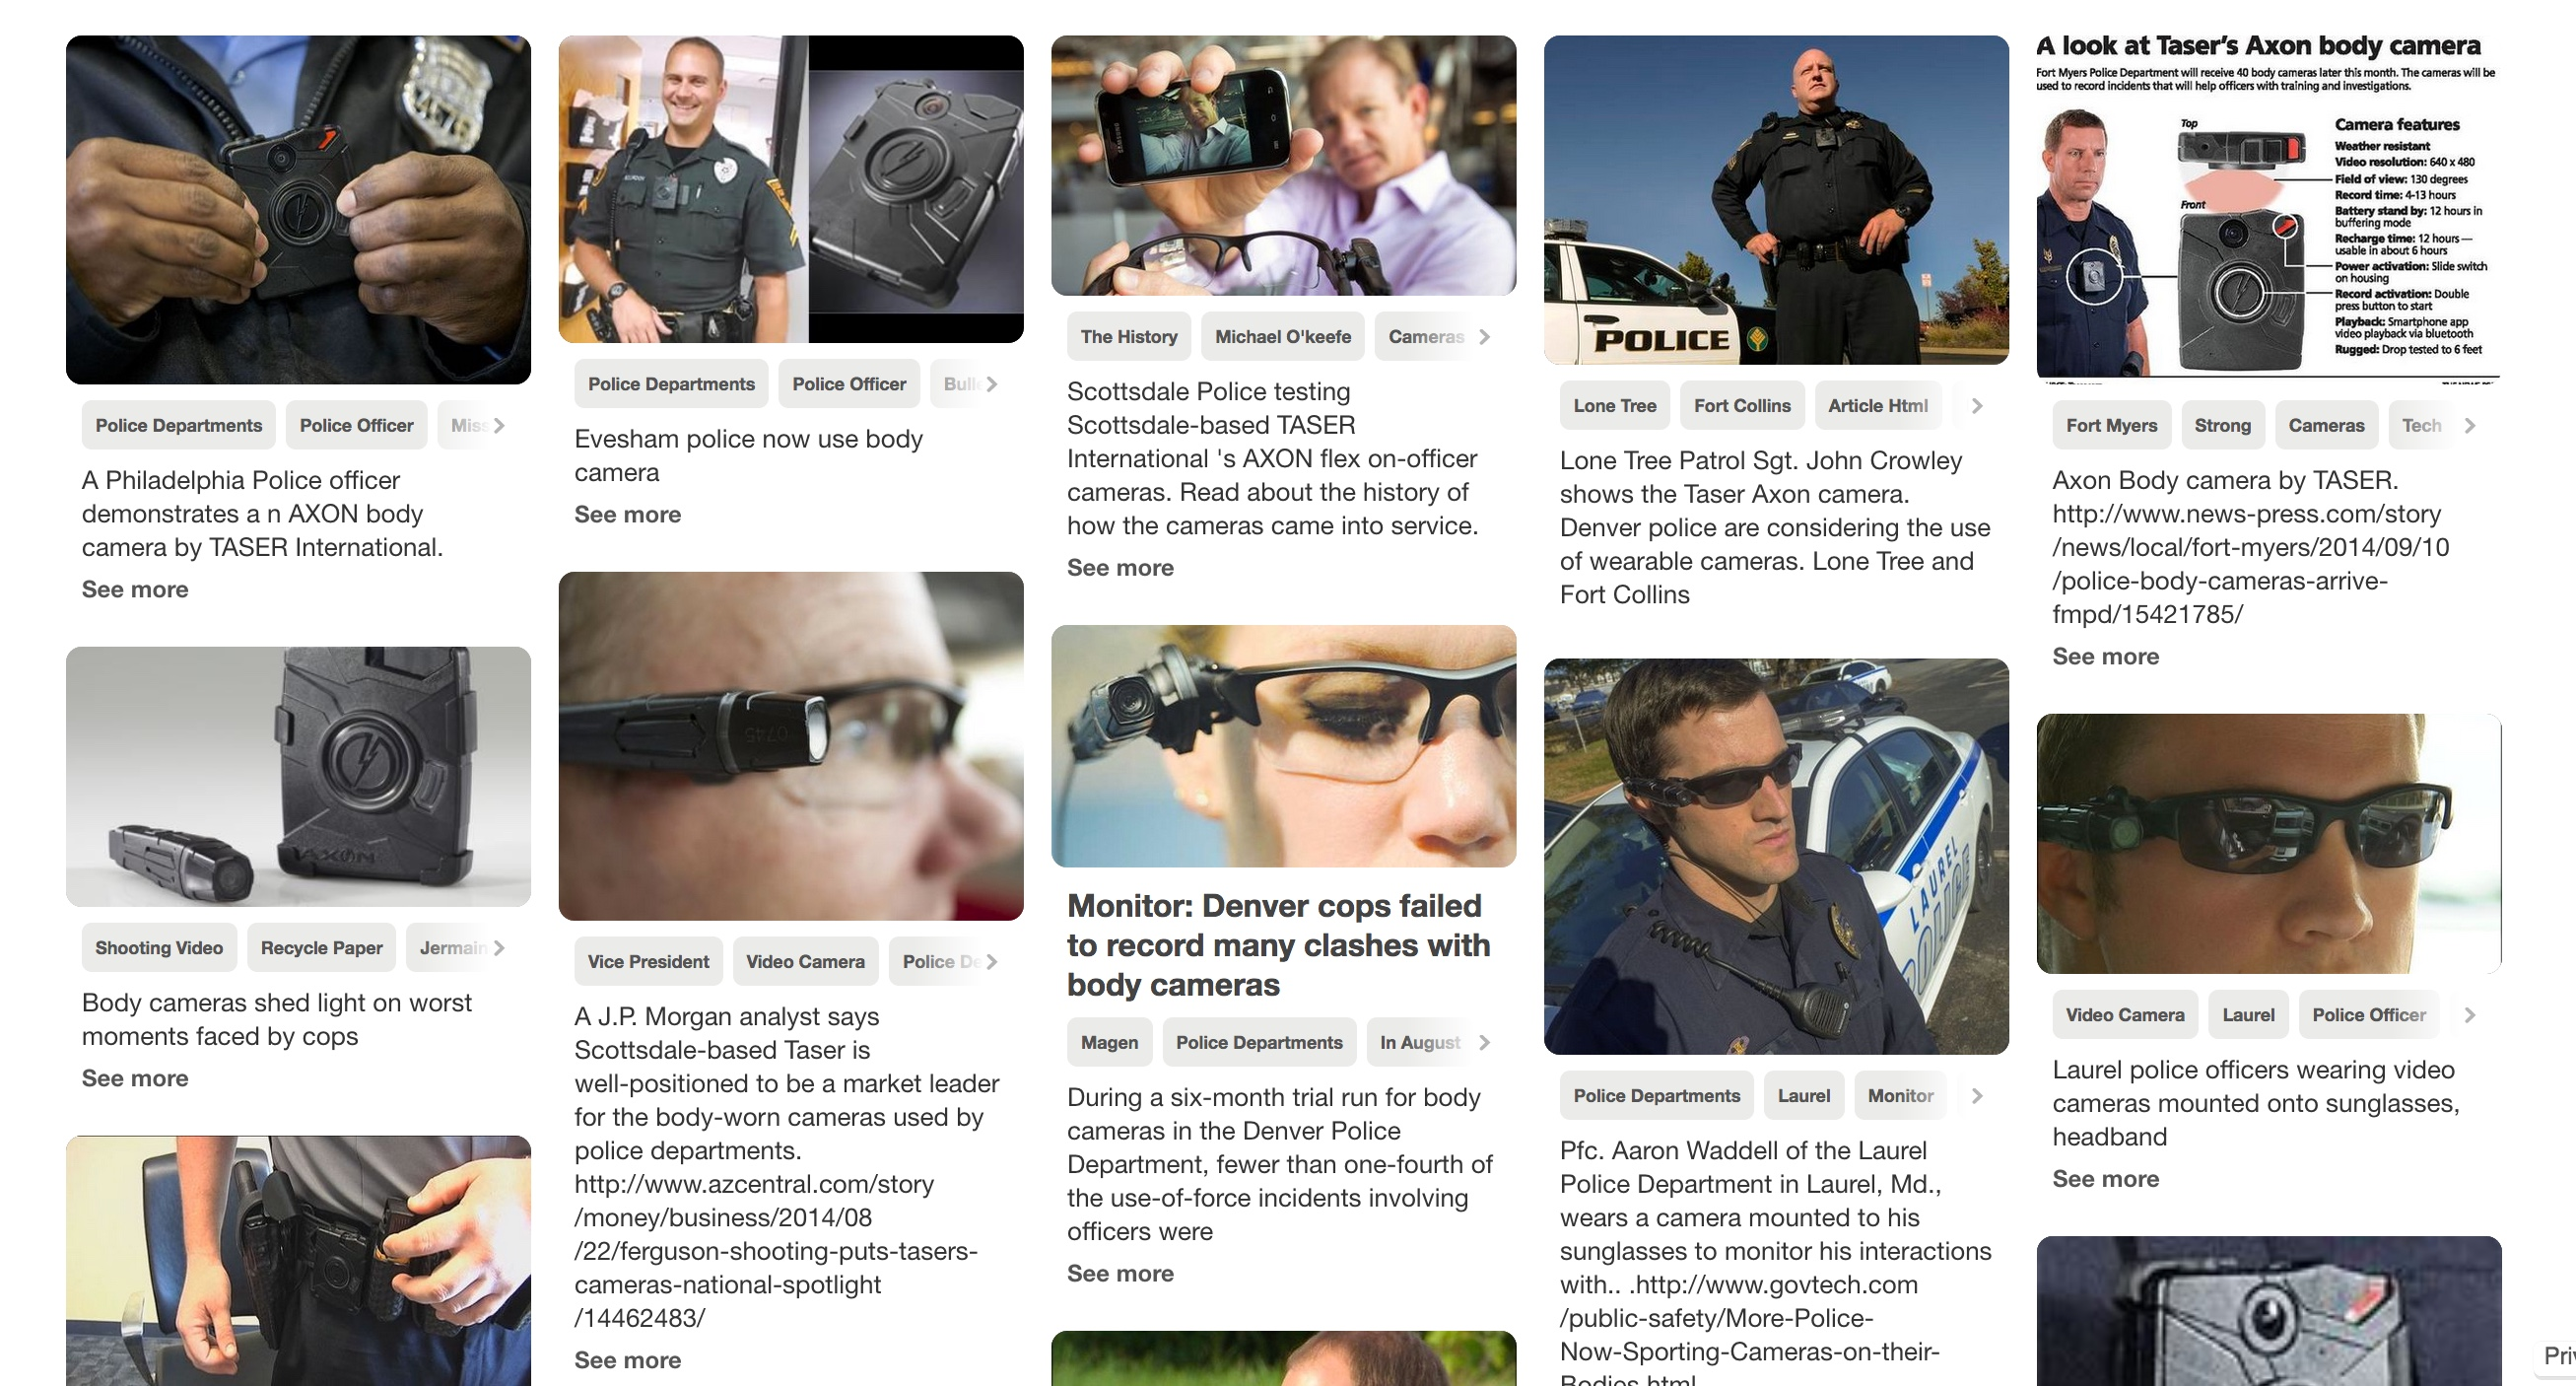 Smile Youre On A Police Body Worn Camera Moving Image Archive News Circuit Training Pinterest Lower Bodies And Takes Interest In Snazzy Surveillance Tool Click For Larger